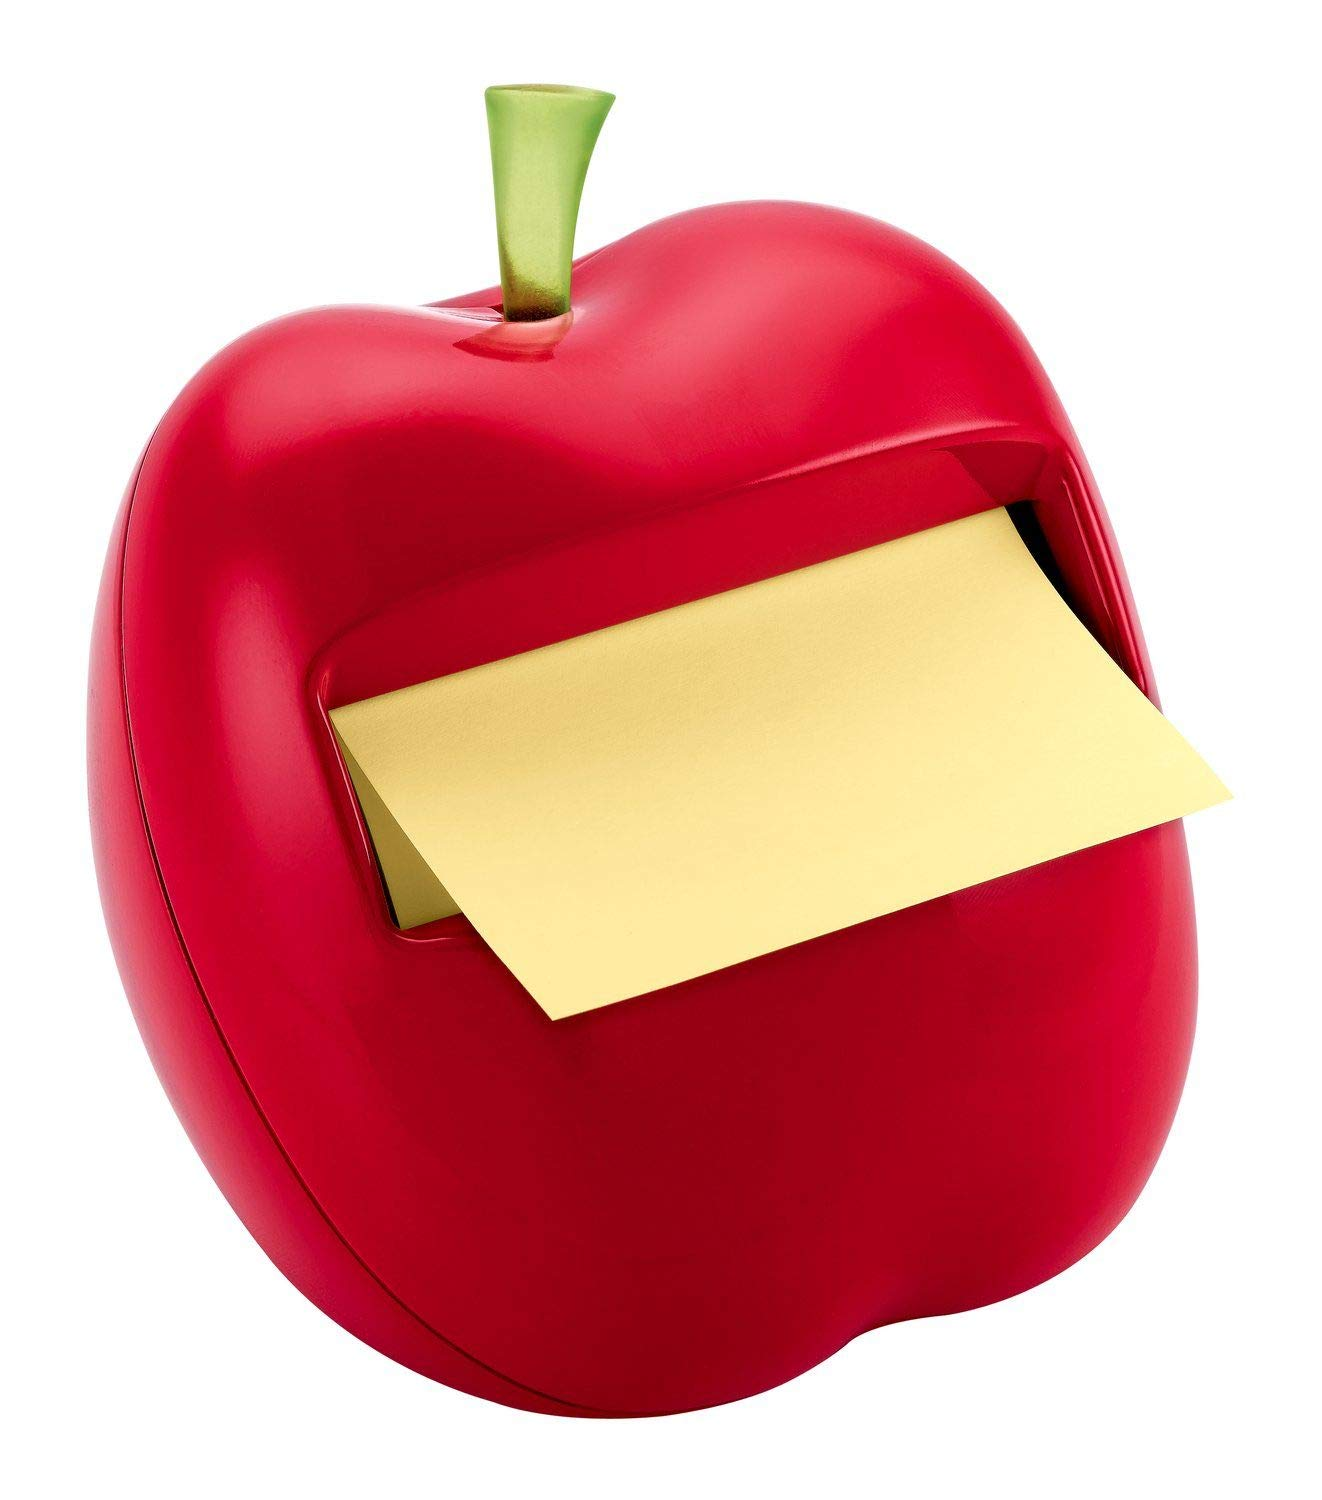 Post-it Pop-up Notes Dispenser for 3 in x 3 in Notes, Apple Shaped Dispenser, Includes 1 Canary Yellow Note (APL-330) by Post-it